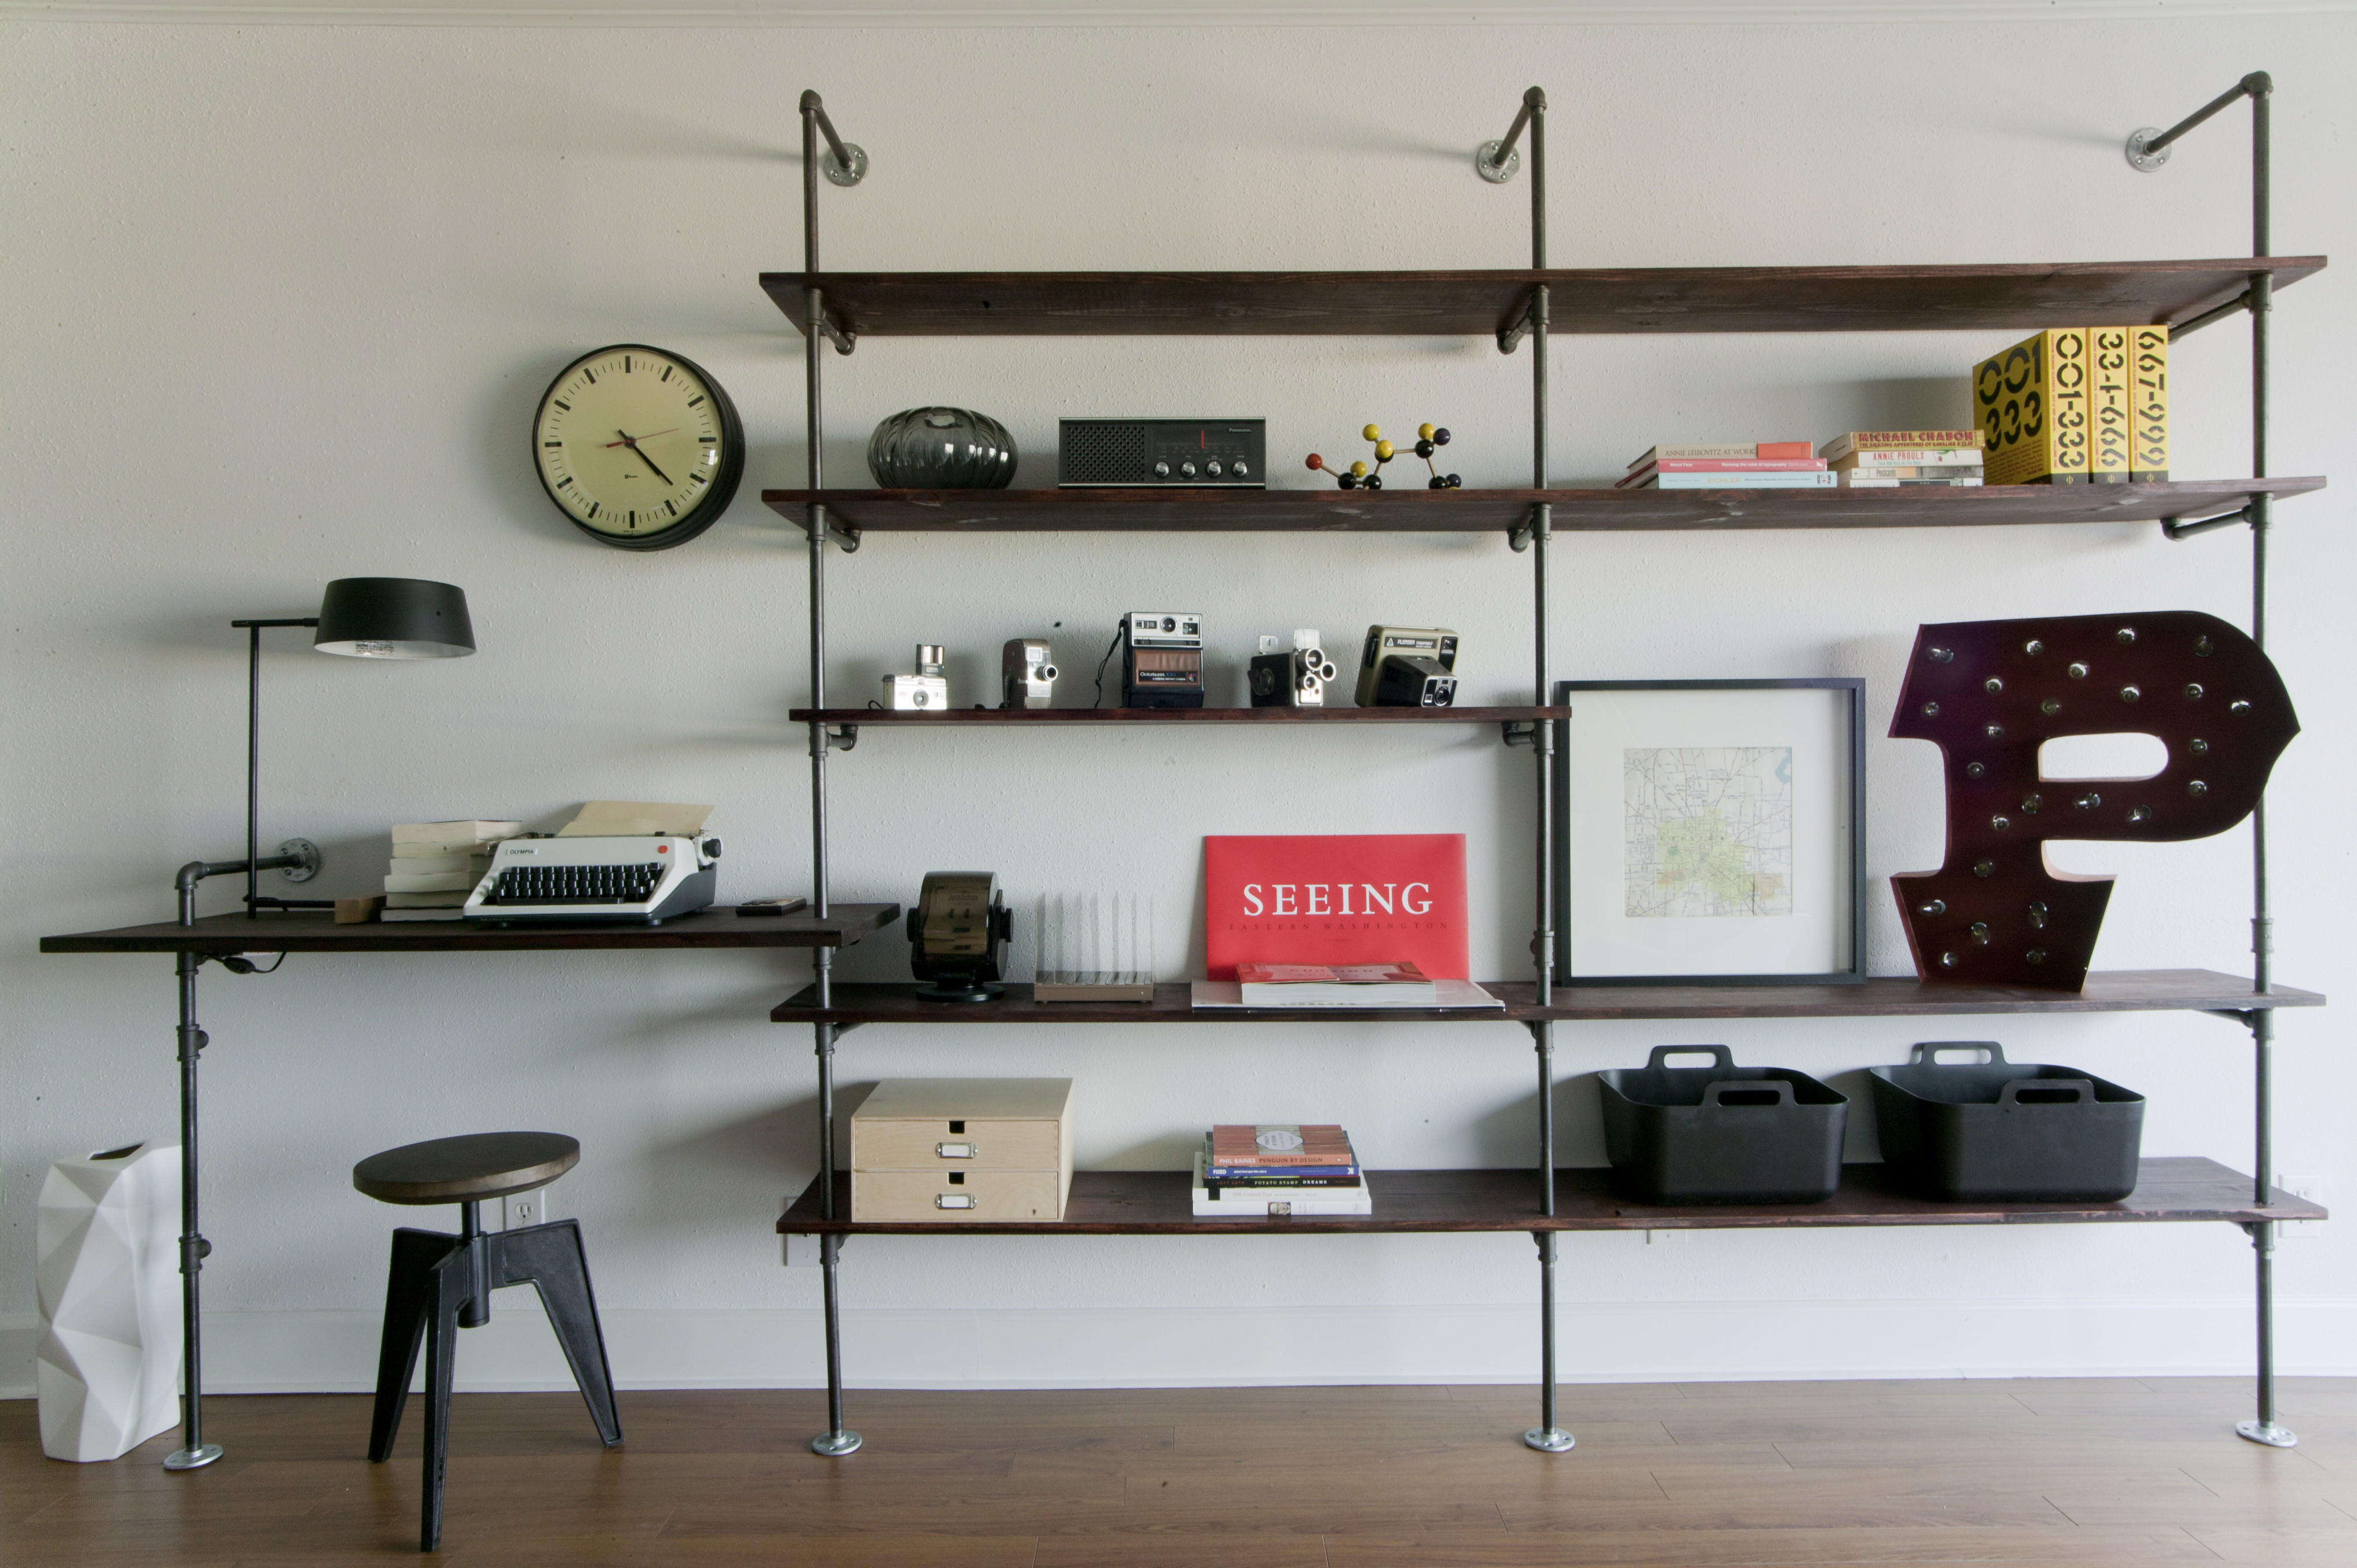 Best ideas about DIY Pipe Shelves . Save or Pin pipe shelves Now.